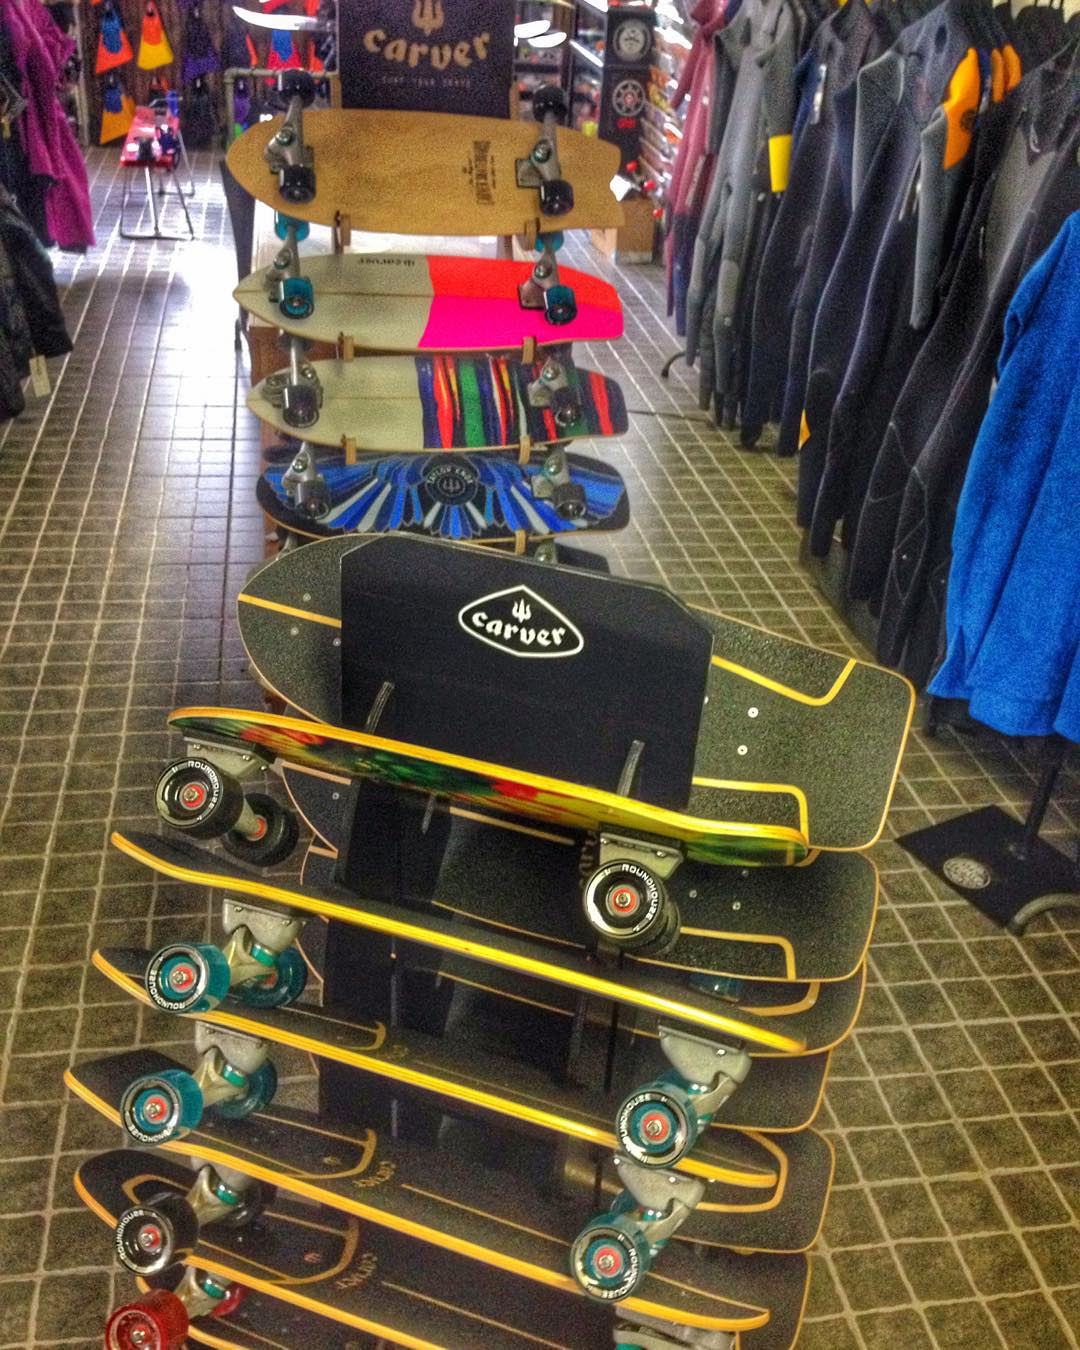 All models available for The holidays @waimeasurfandculture #carver #skateboards